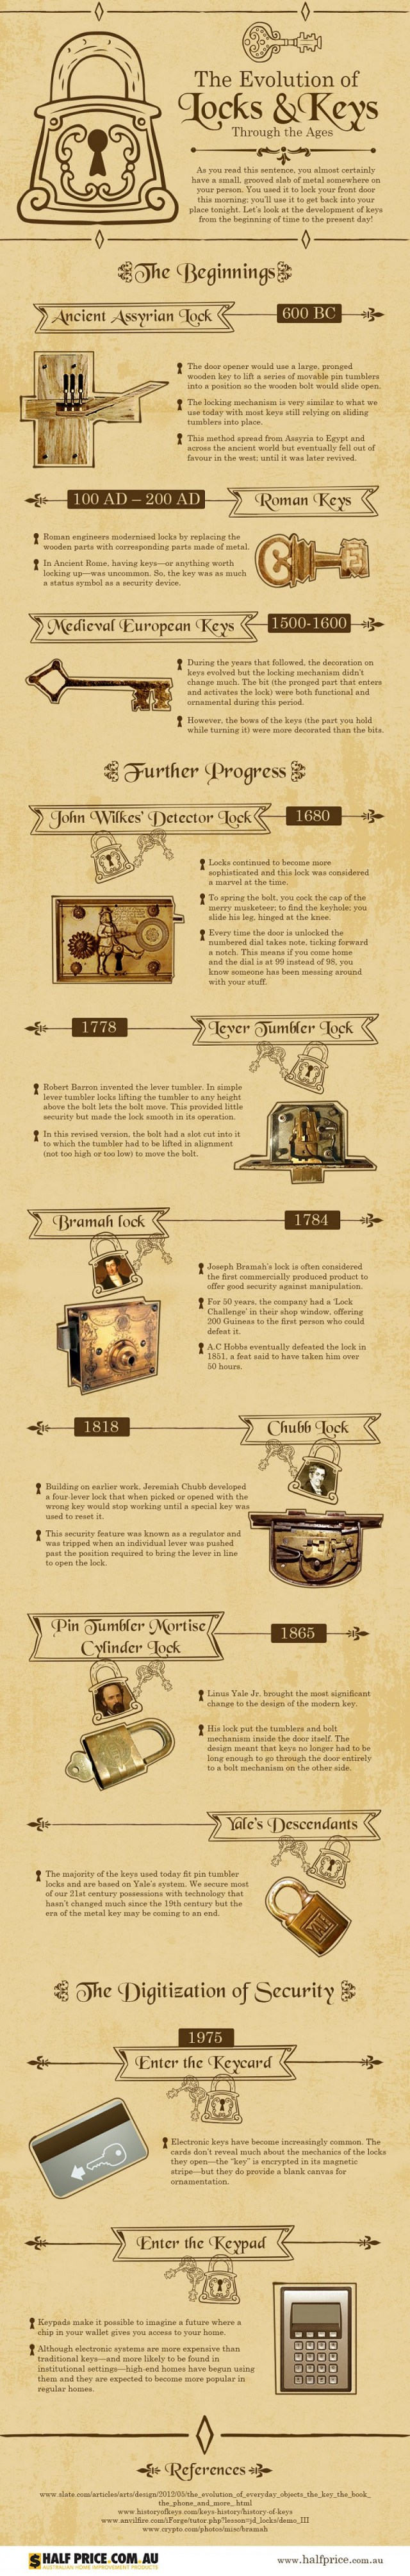 The Evolution of Locks & Keys Through the Ages